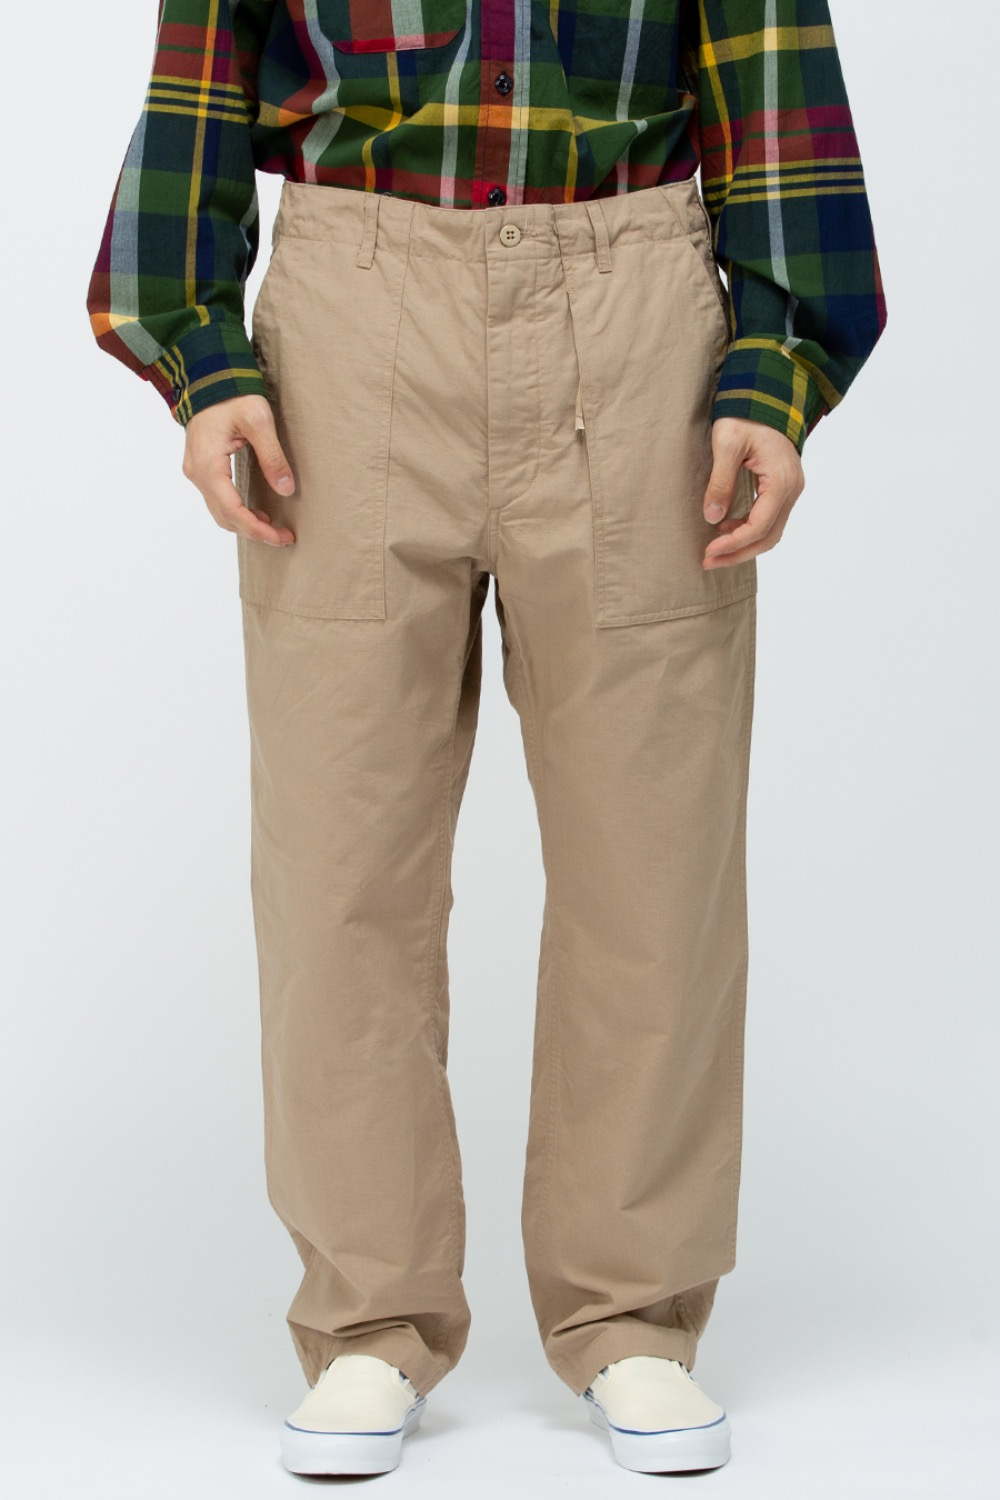 FATIGUE PANT COTTON RIPSTOP KHAKI